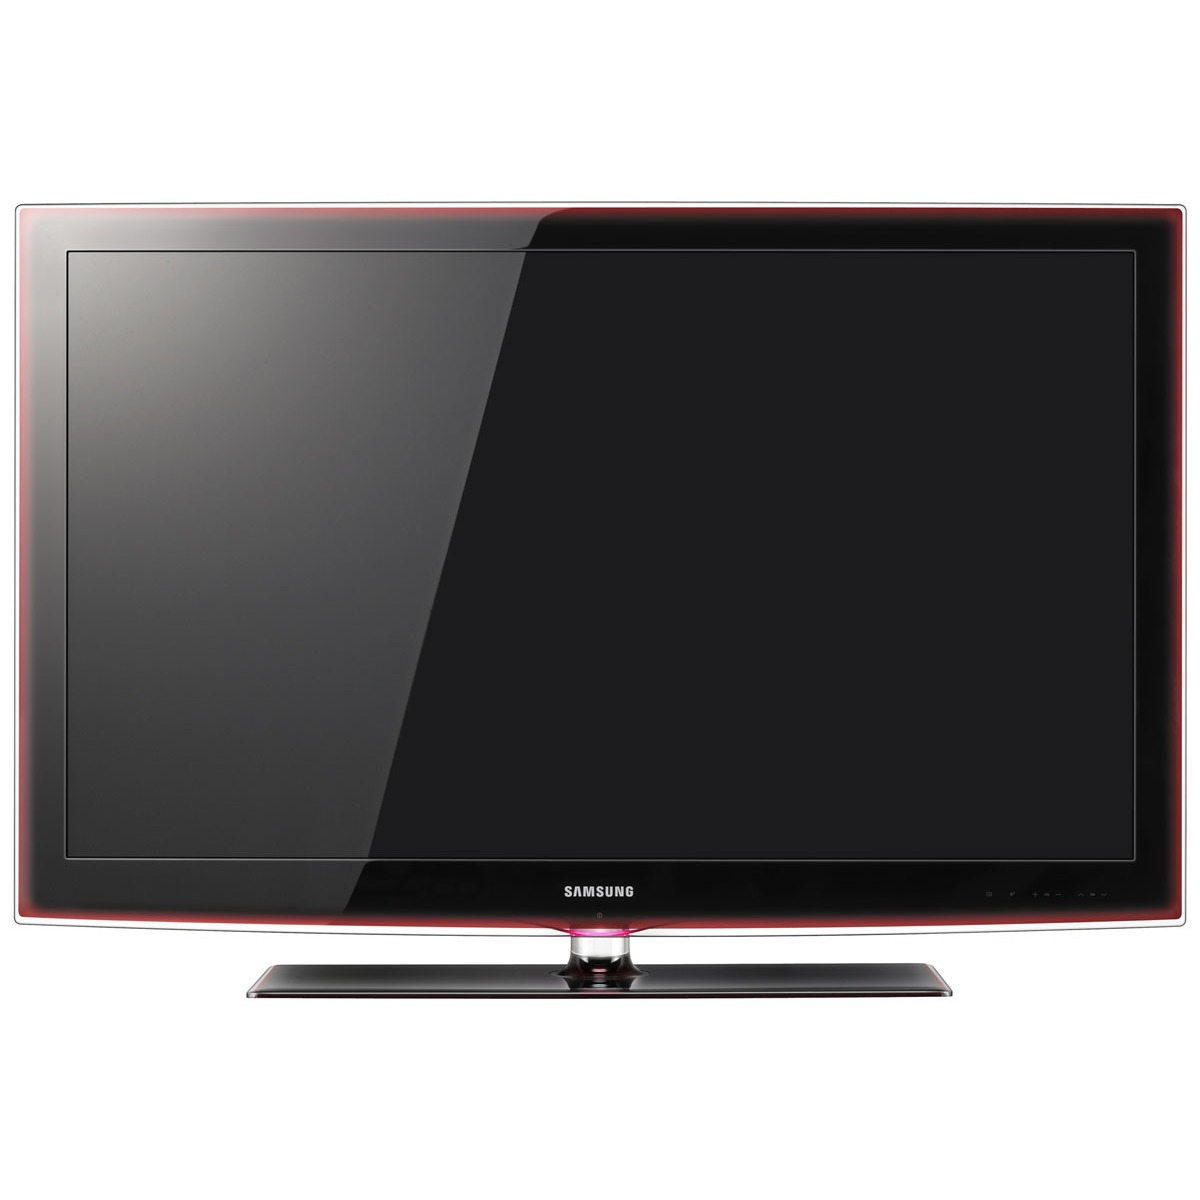 samsung ue32b6000 tv samsung sur ldlc. Black Bedroom Furniture Sets. Home Design Ideas